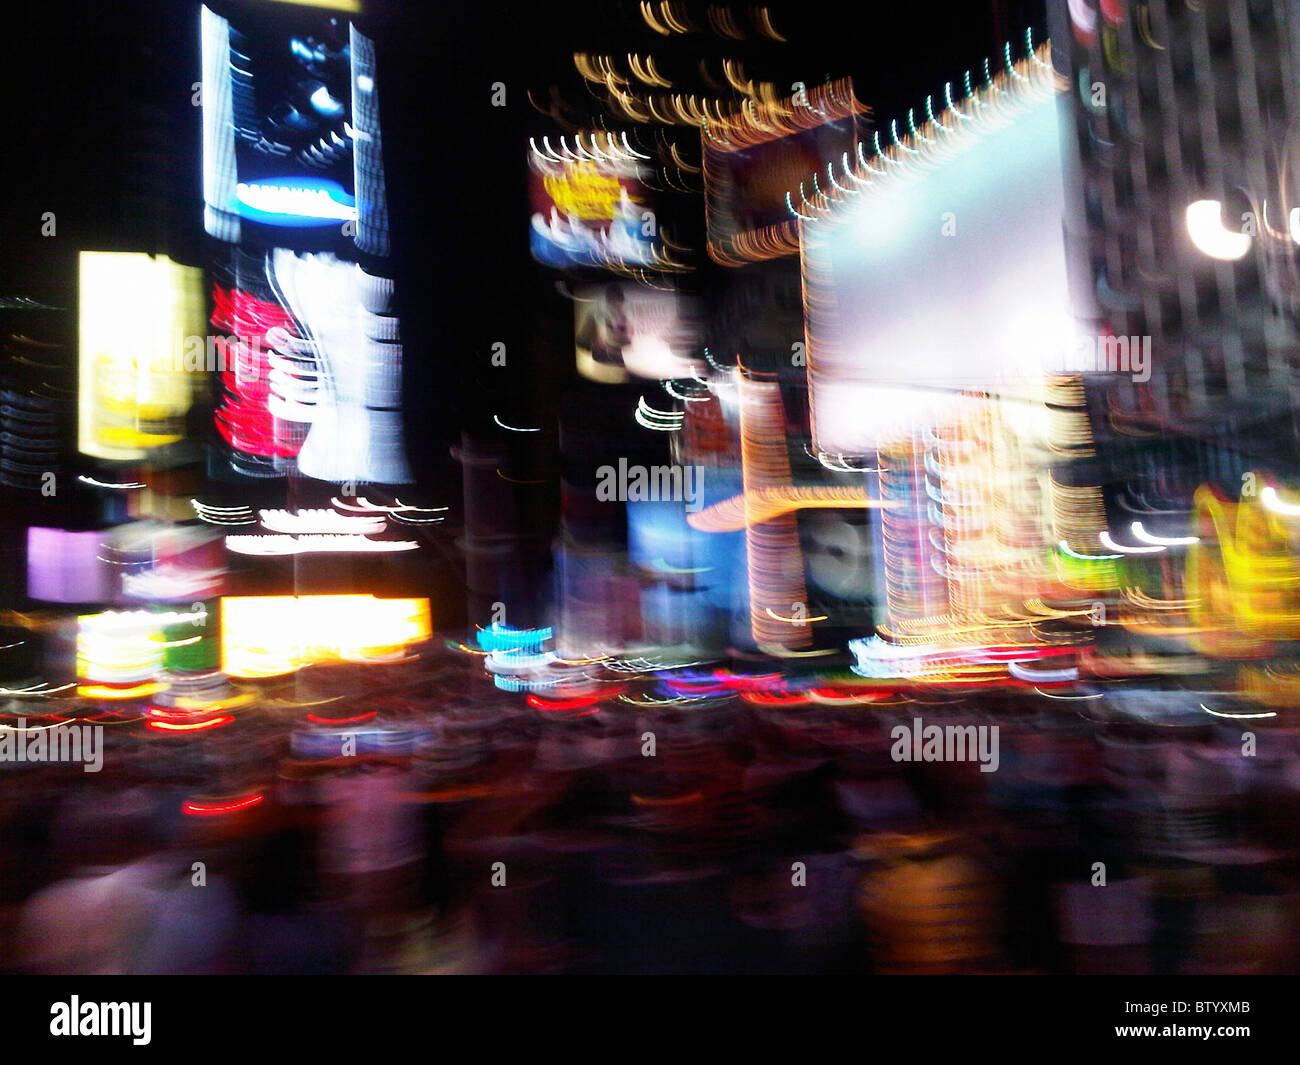 Blurring lights of New York City, Times Square. - Stock Image